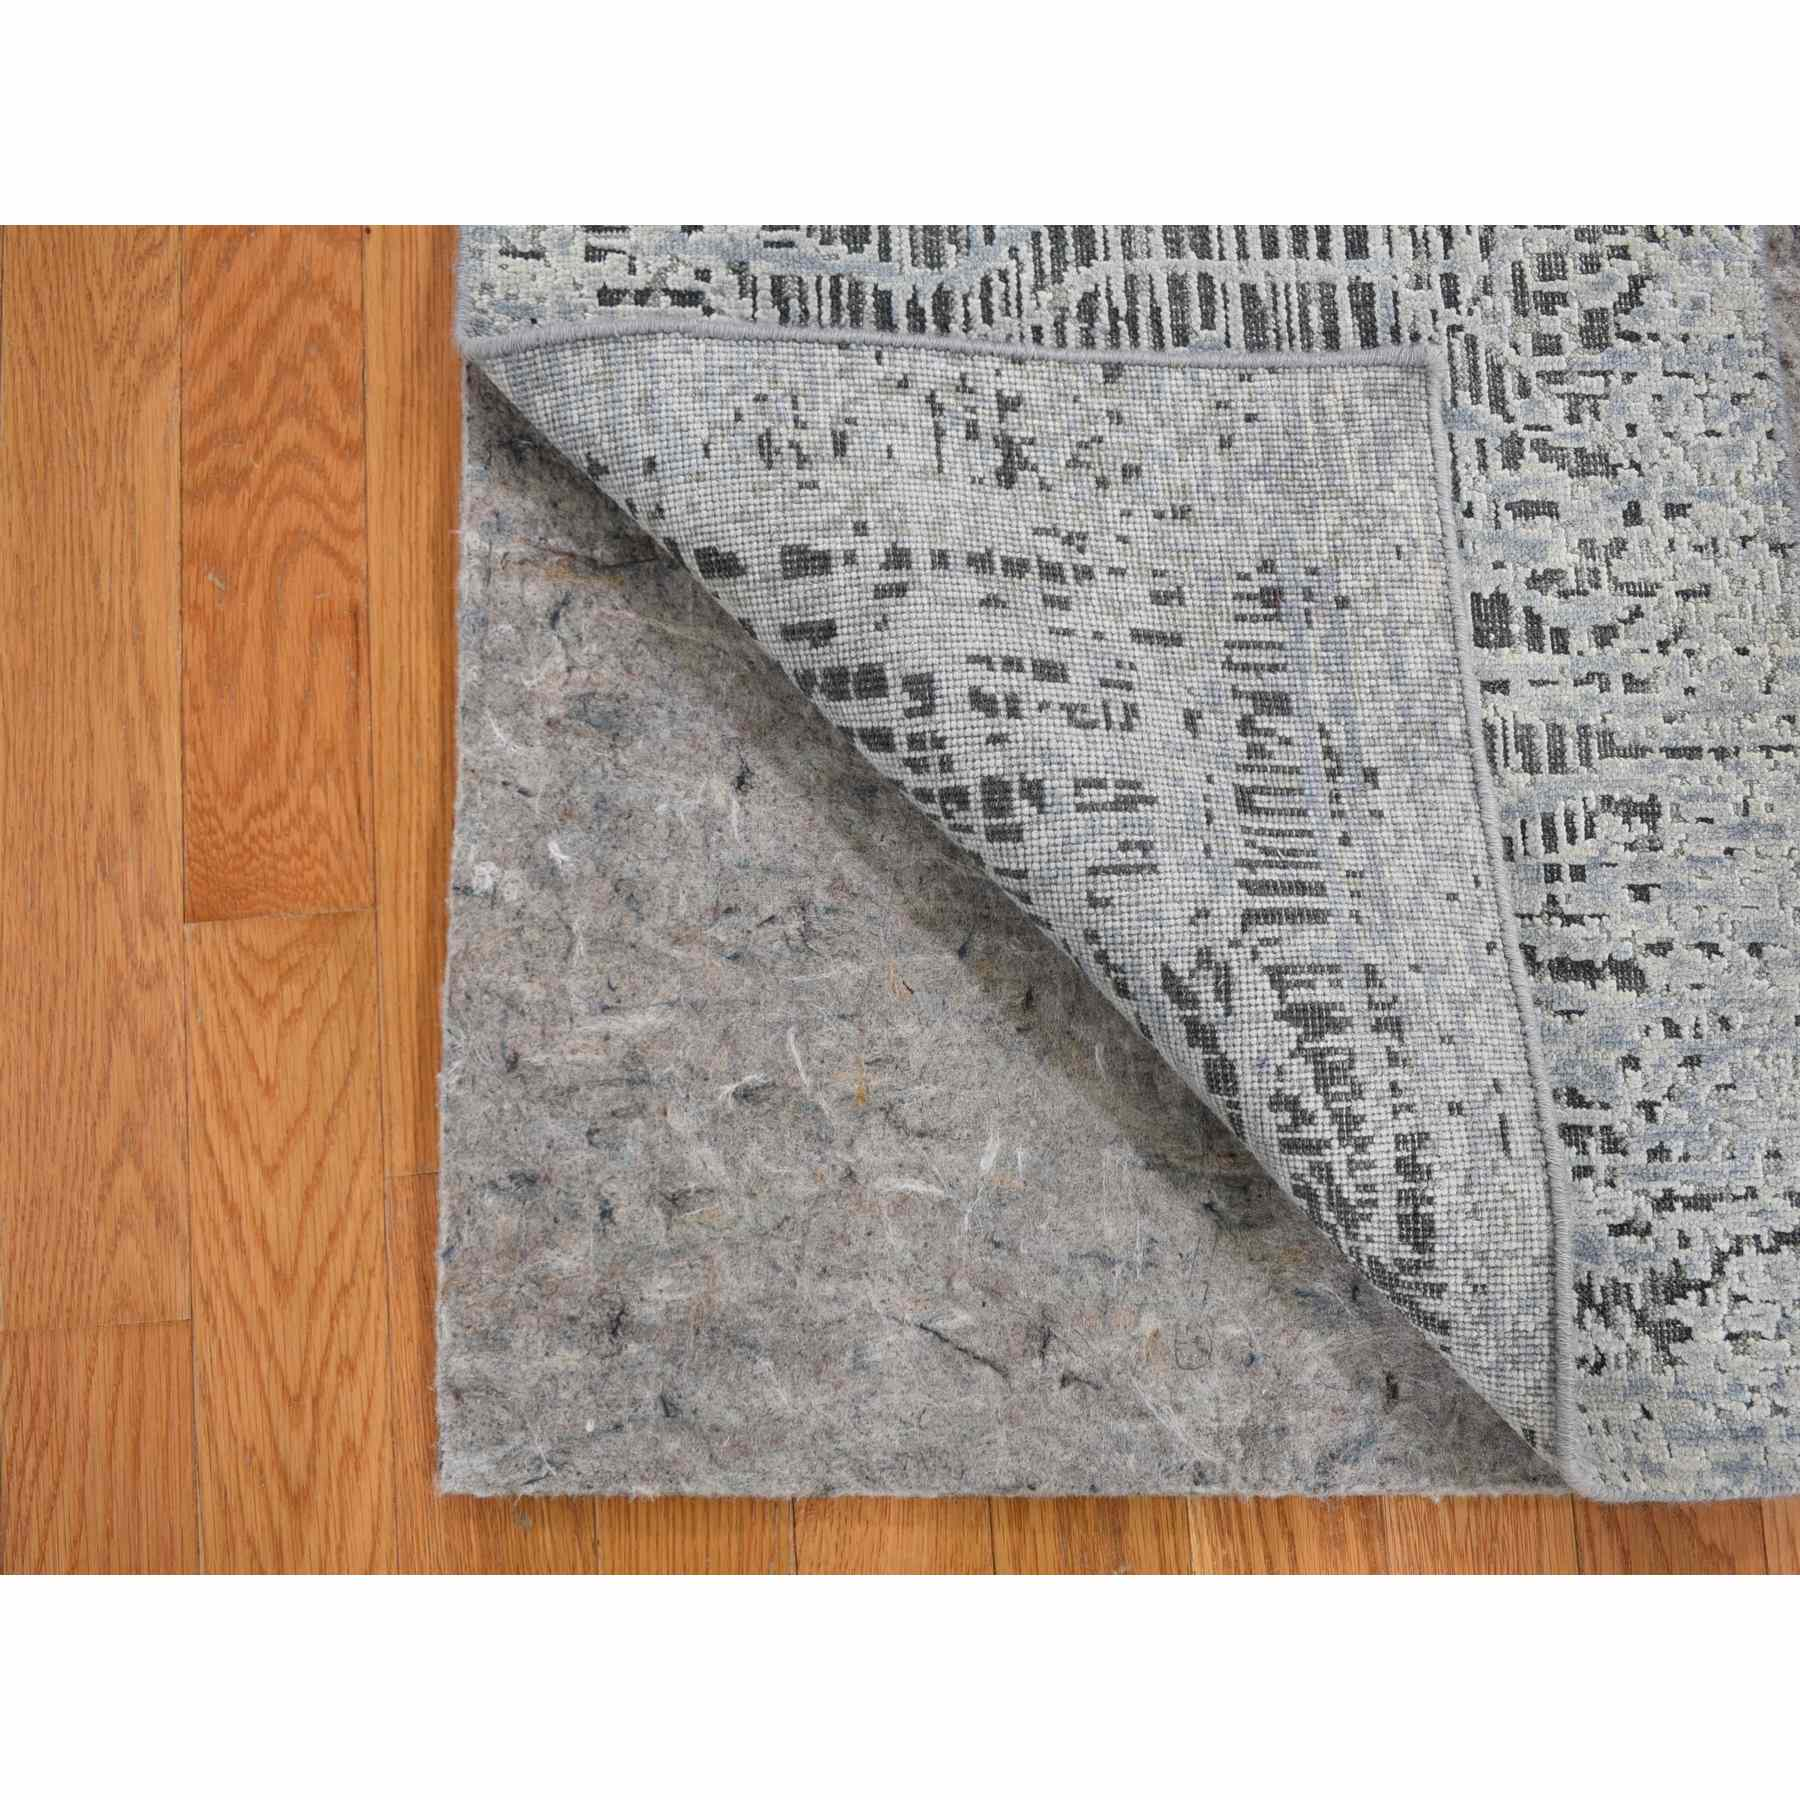 2'x3' THE LOST BRANCHES, Sampler Silk With Textured Wool Hand Woven Oriental Rug